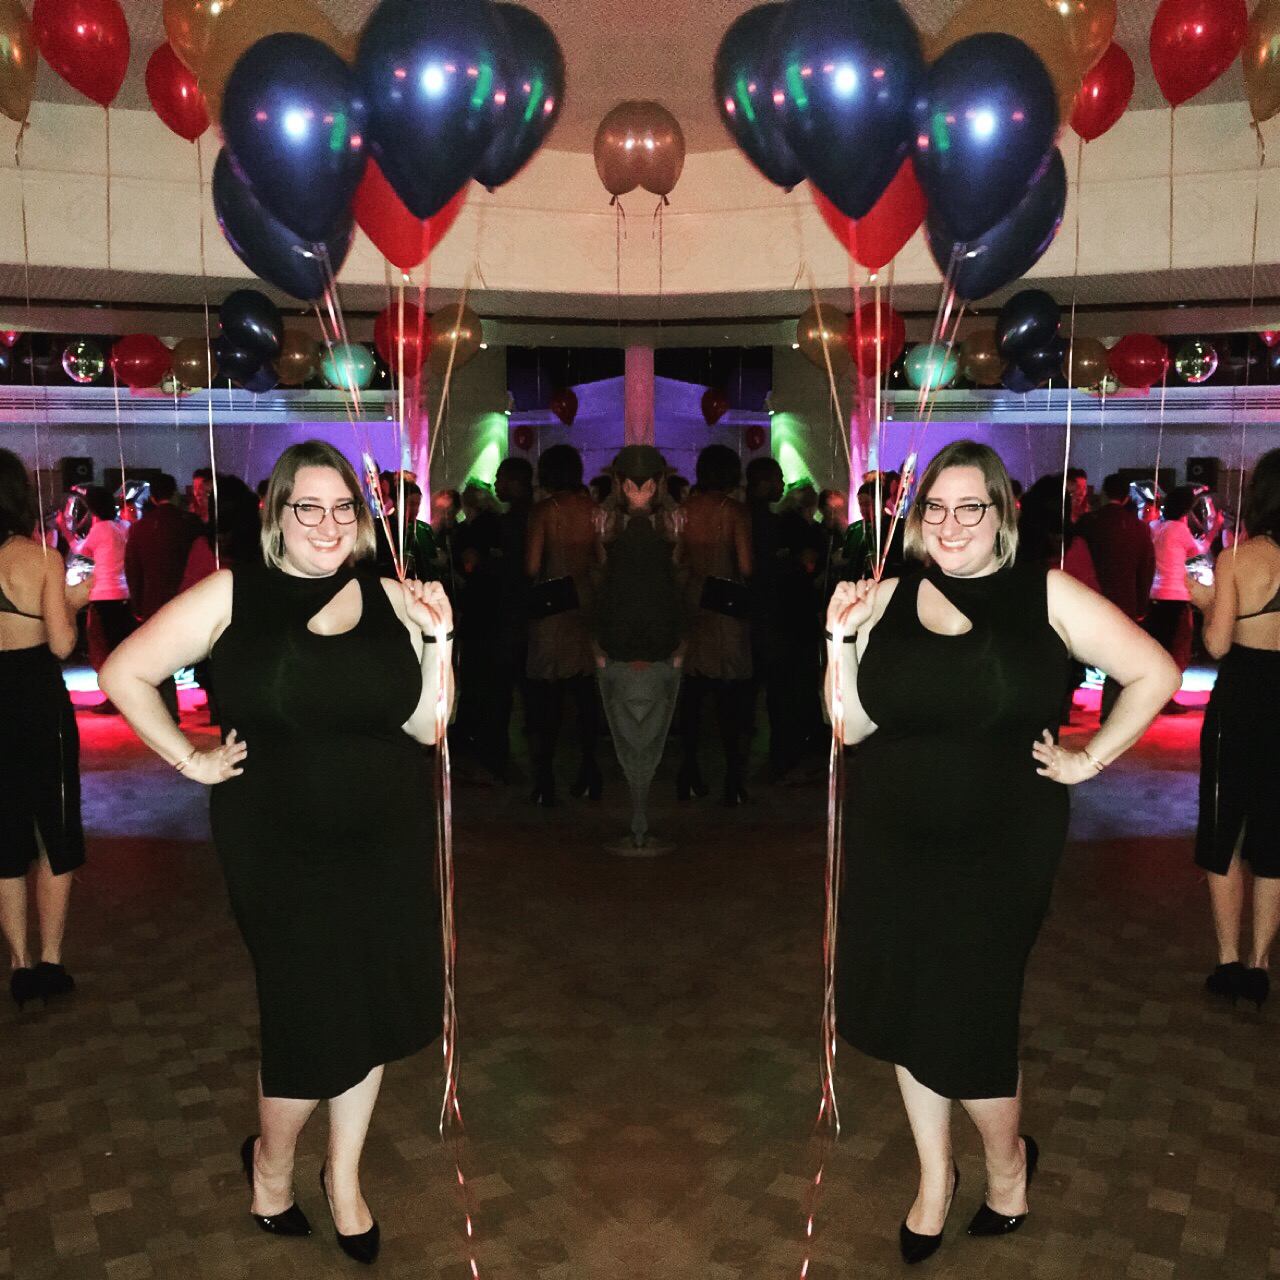 OOTD: New Year's Eve at the Ace Hotel